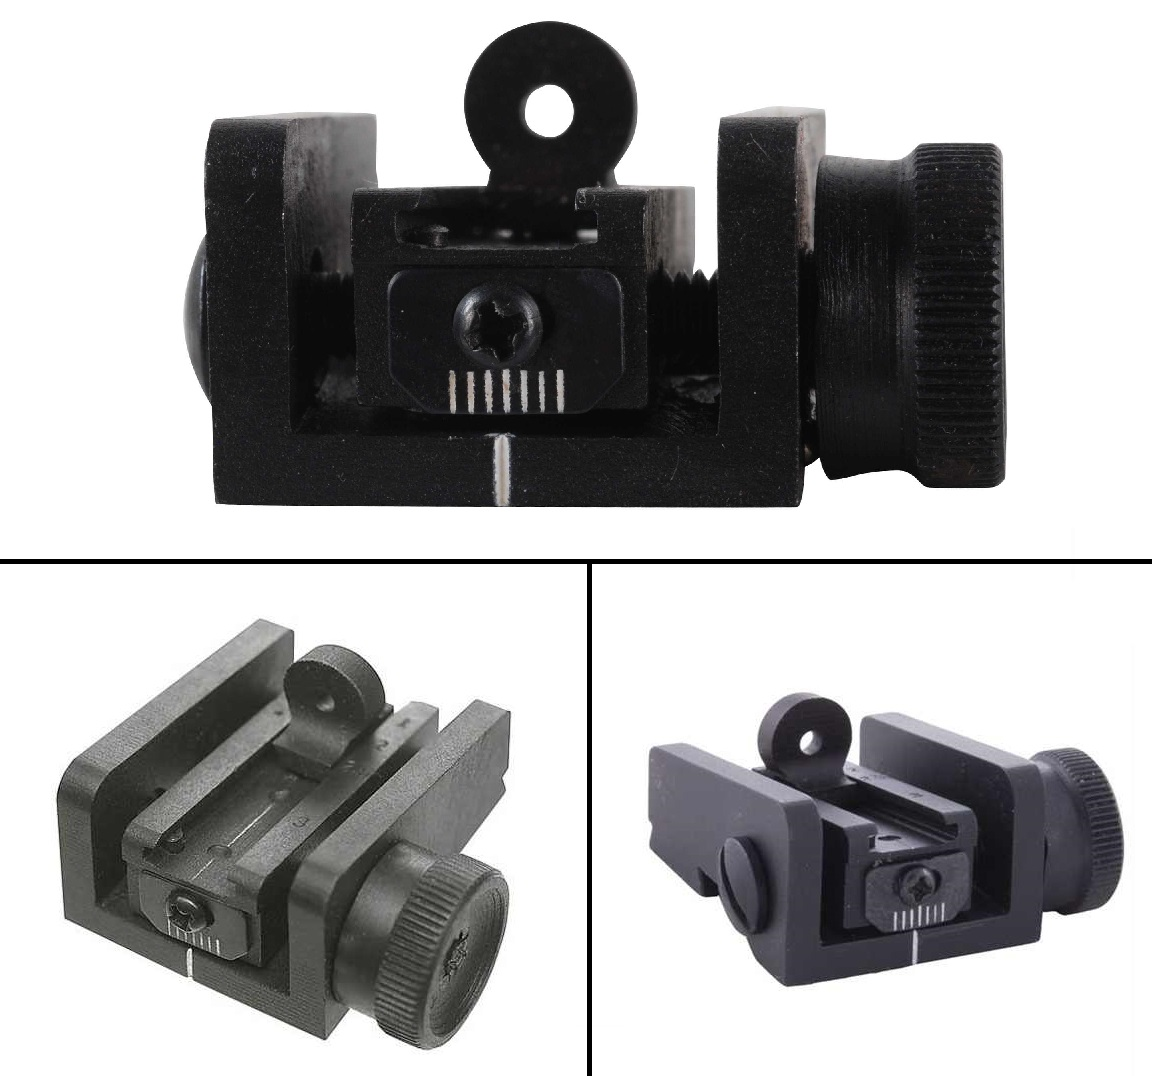 Ultimate Arms Gear M1 M-1 Carbine Rifle Precision Steel Matte Peep Aperture Rear Sight Assembly Adjustable Windage and Elevation